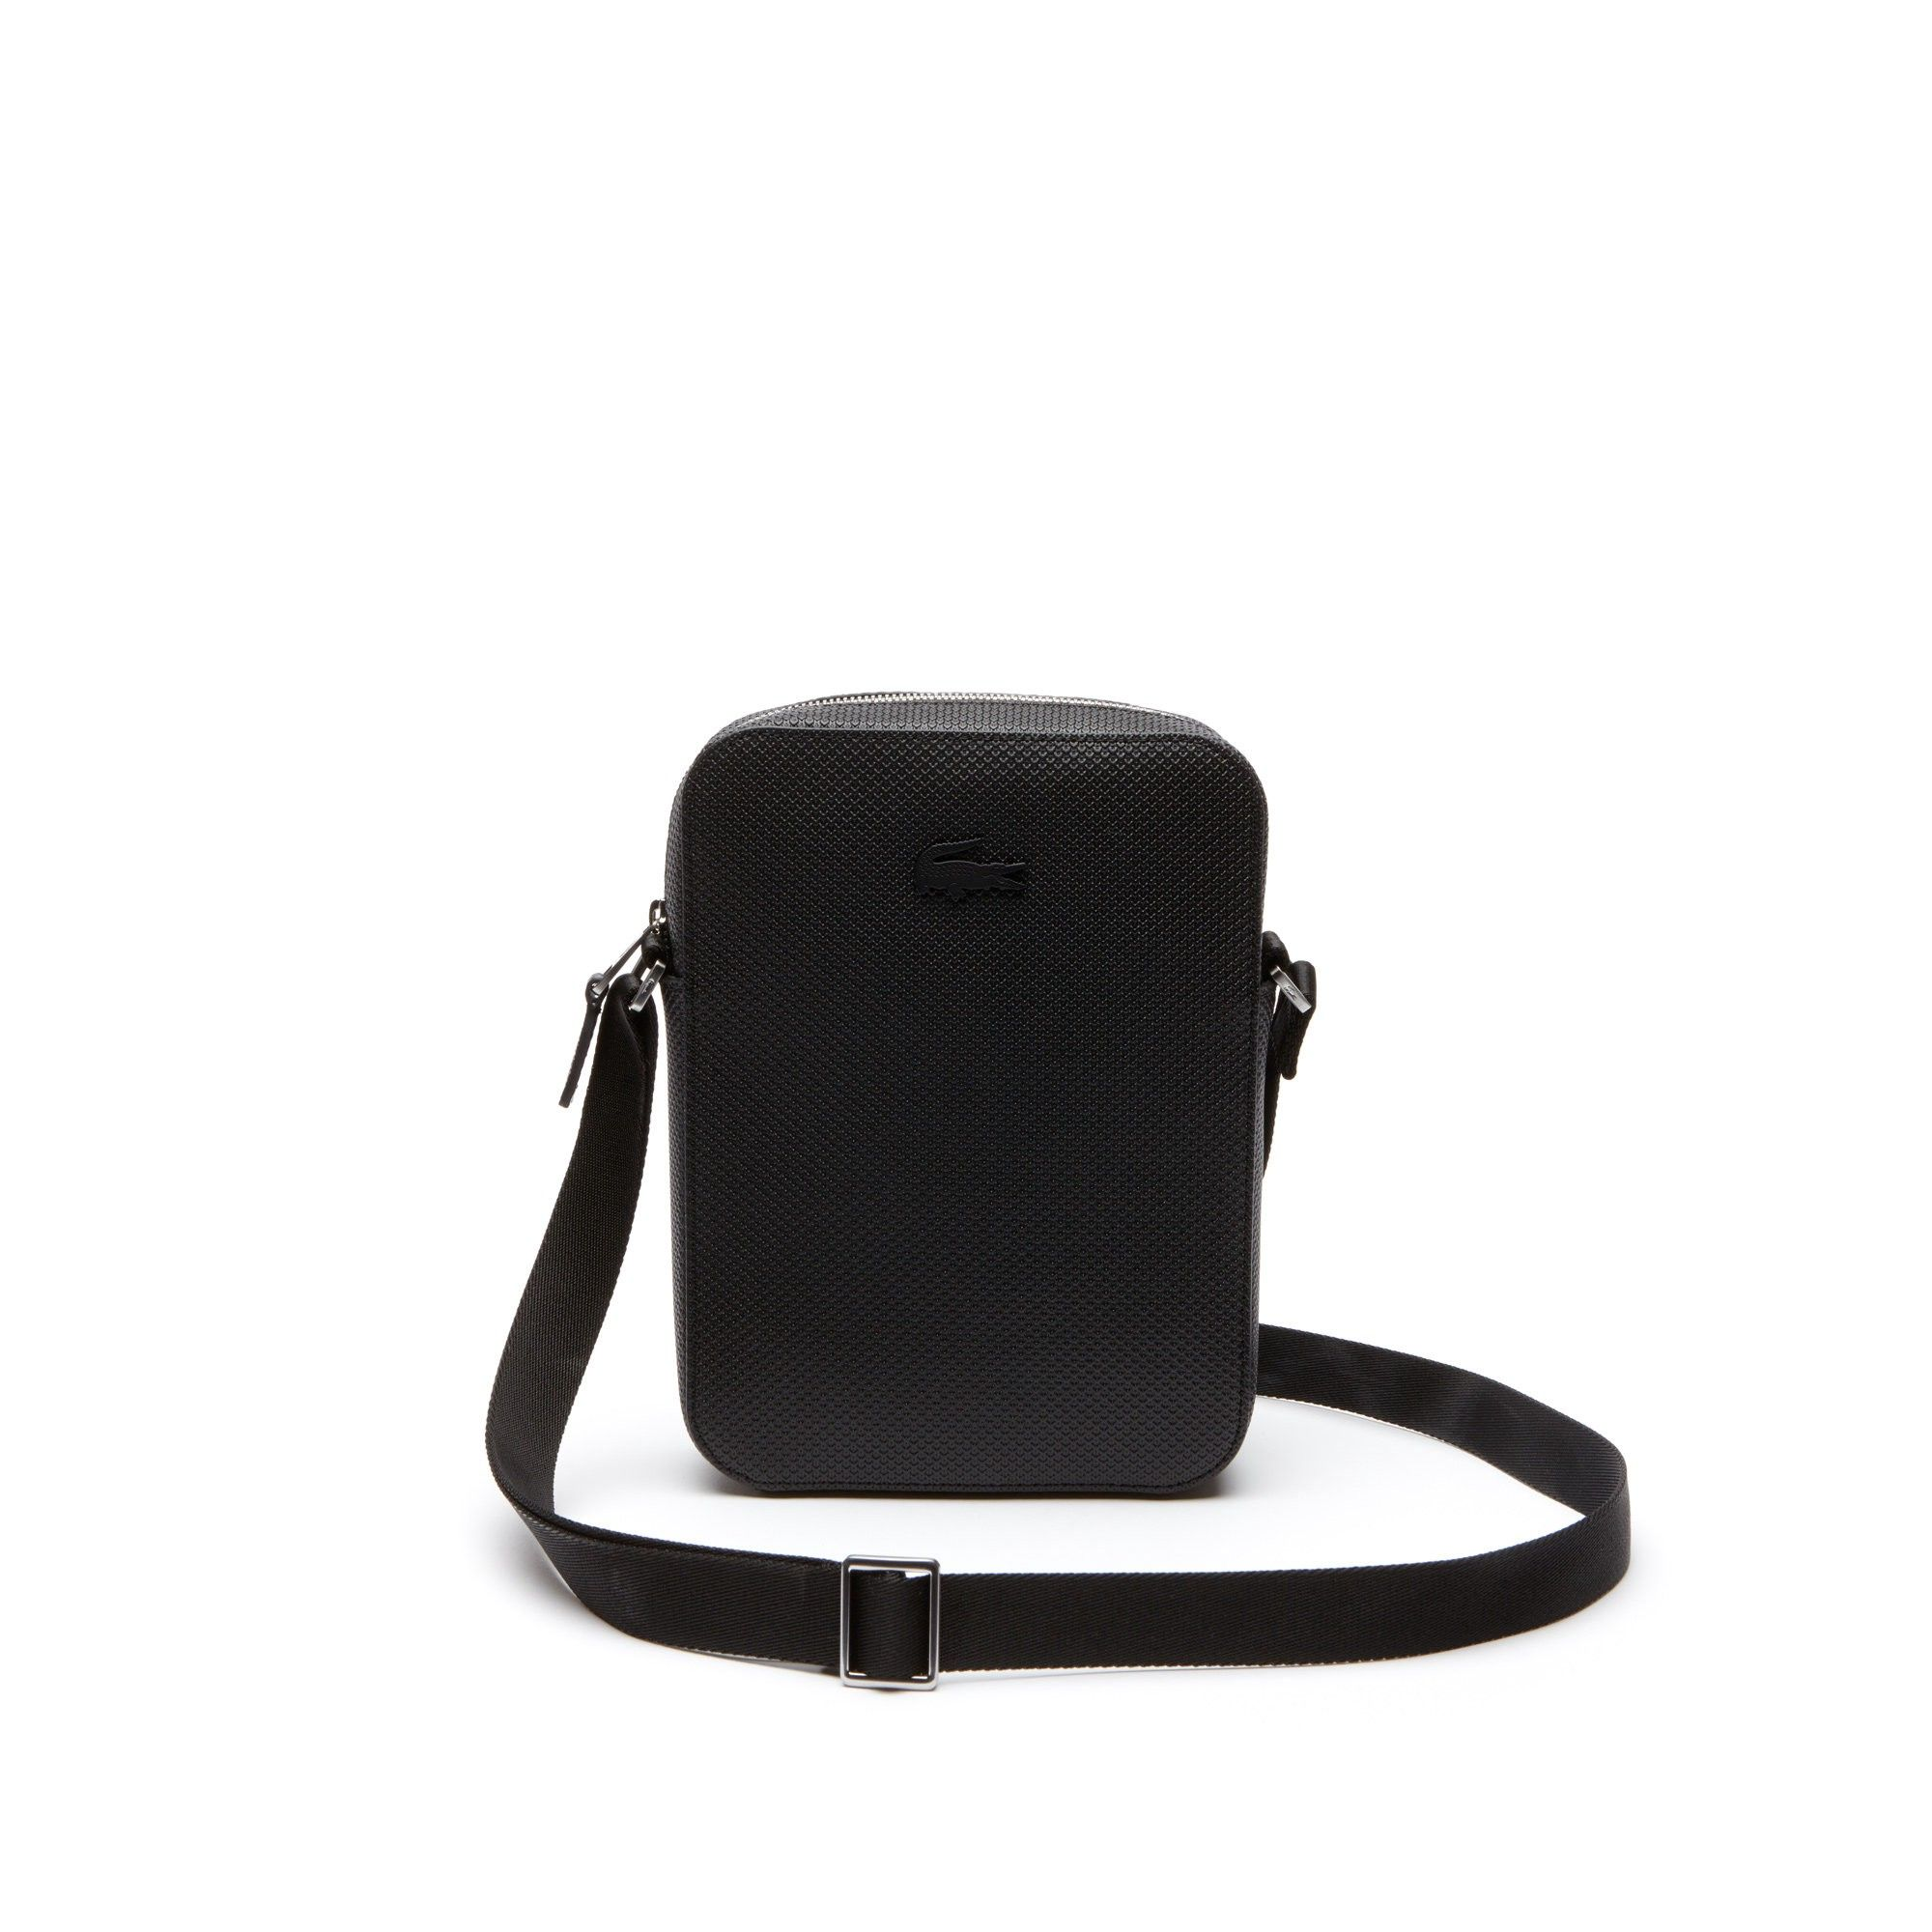 LACOSTE Men s Chantaco Vertical Matte Piqué Leather Bag - black.  lacoste   bags  shoulder bags  leather   17db36623dd8e